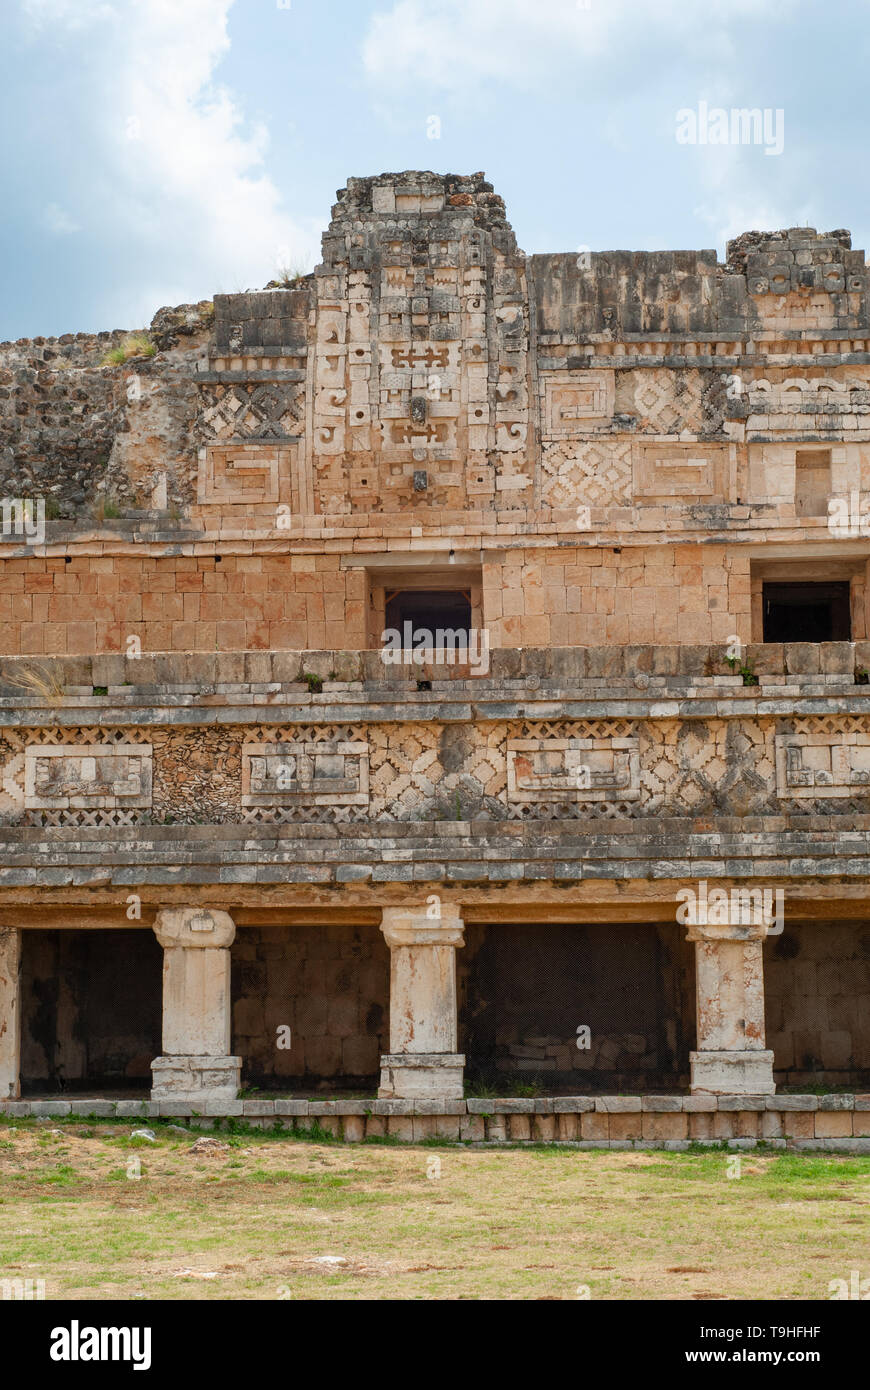 Architectural details of a Mayan building, in the archaeological area of Ek Balam, on the Yucatan peninsula - Stock Image